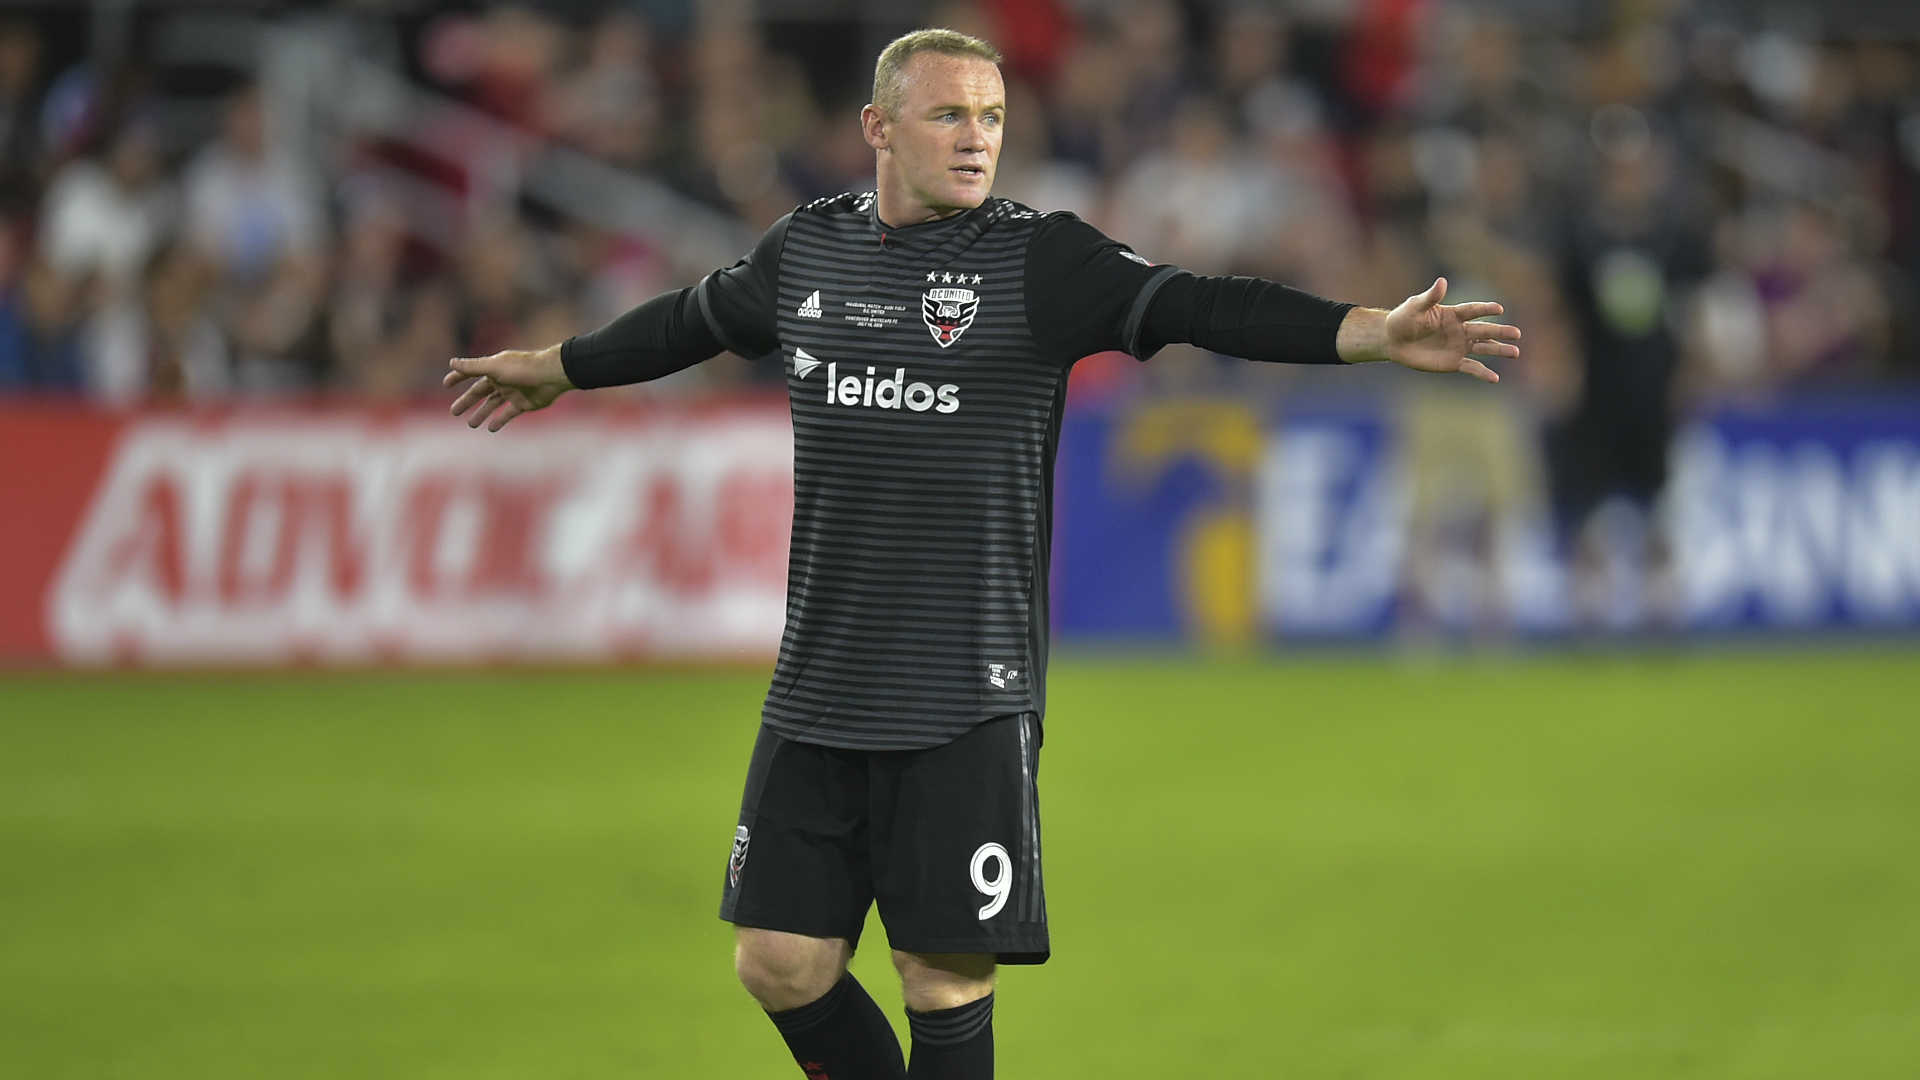 DC United captain Wayne Rooney won't be disciplined following arrest, report says